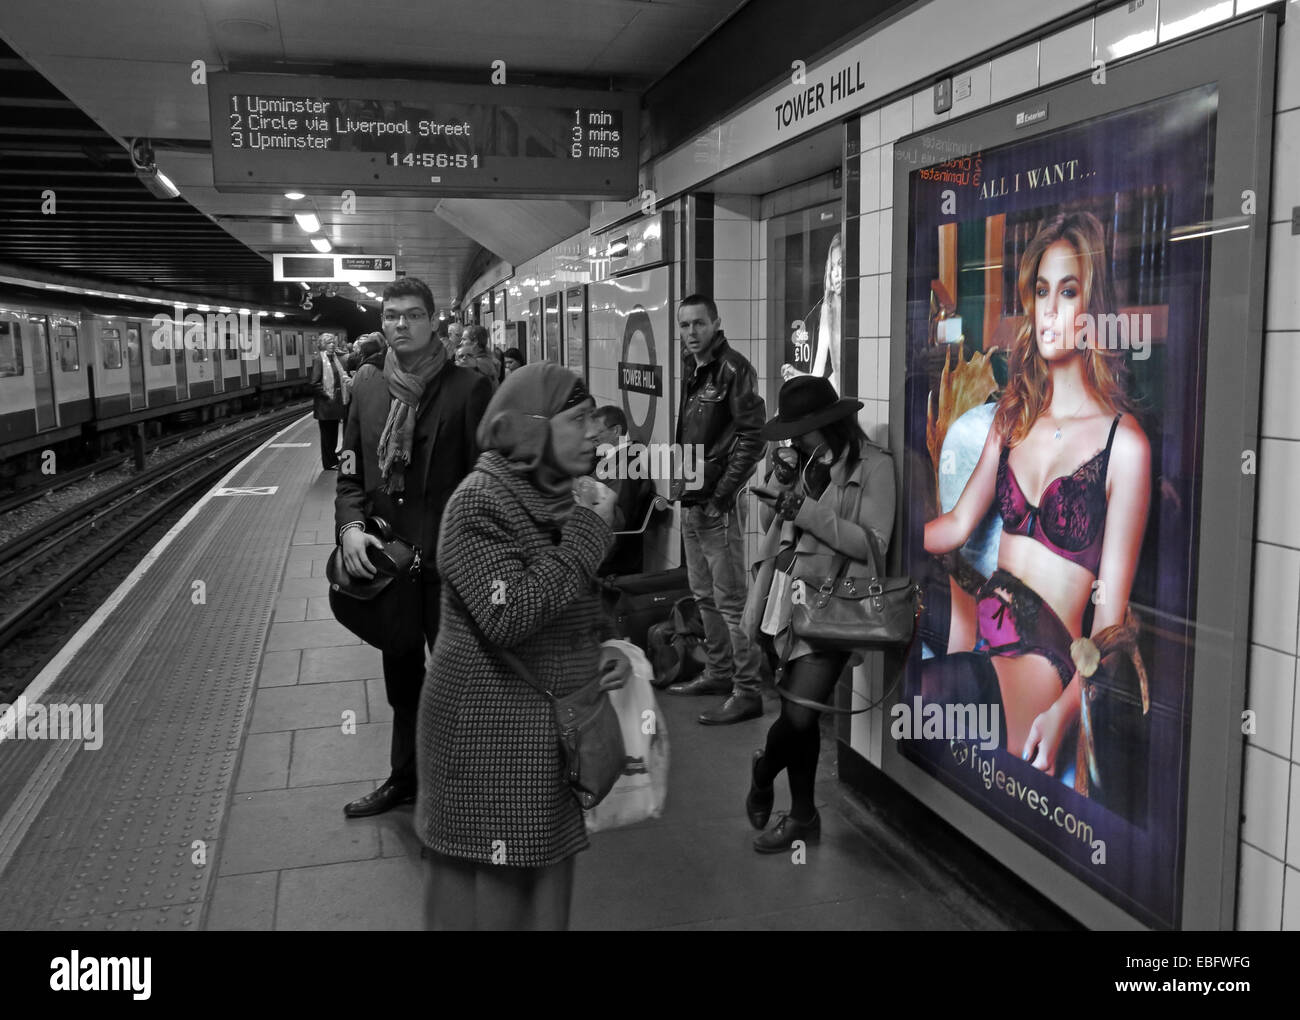 'All I want' poster for lingerie at Moorgate, London City Underground platform, England, UK in selective colour Stock Photo